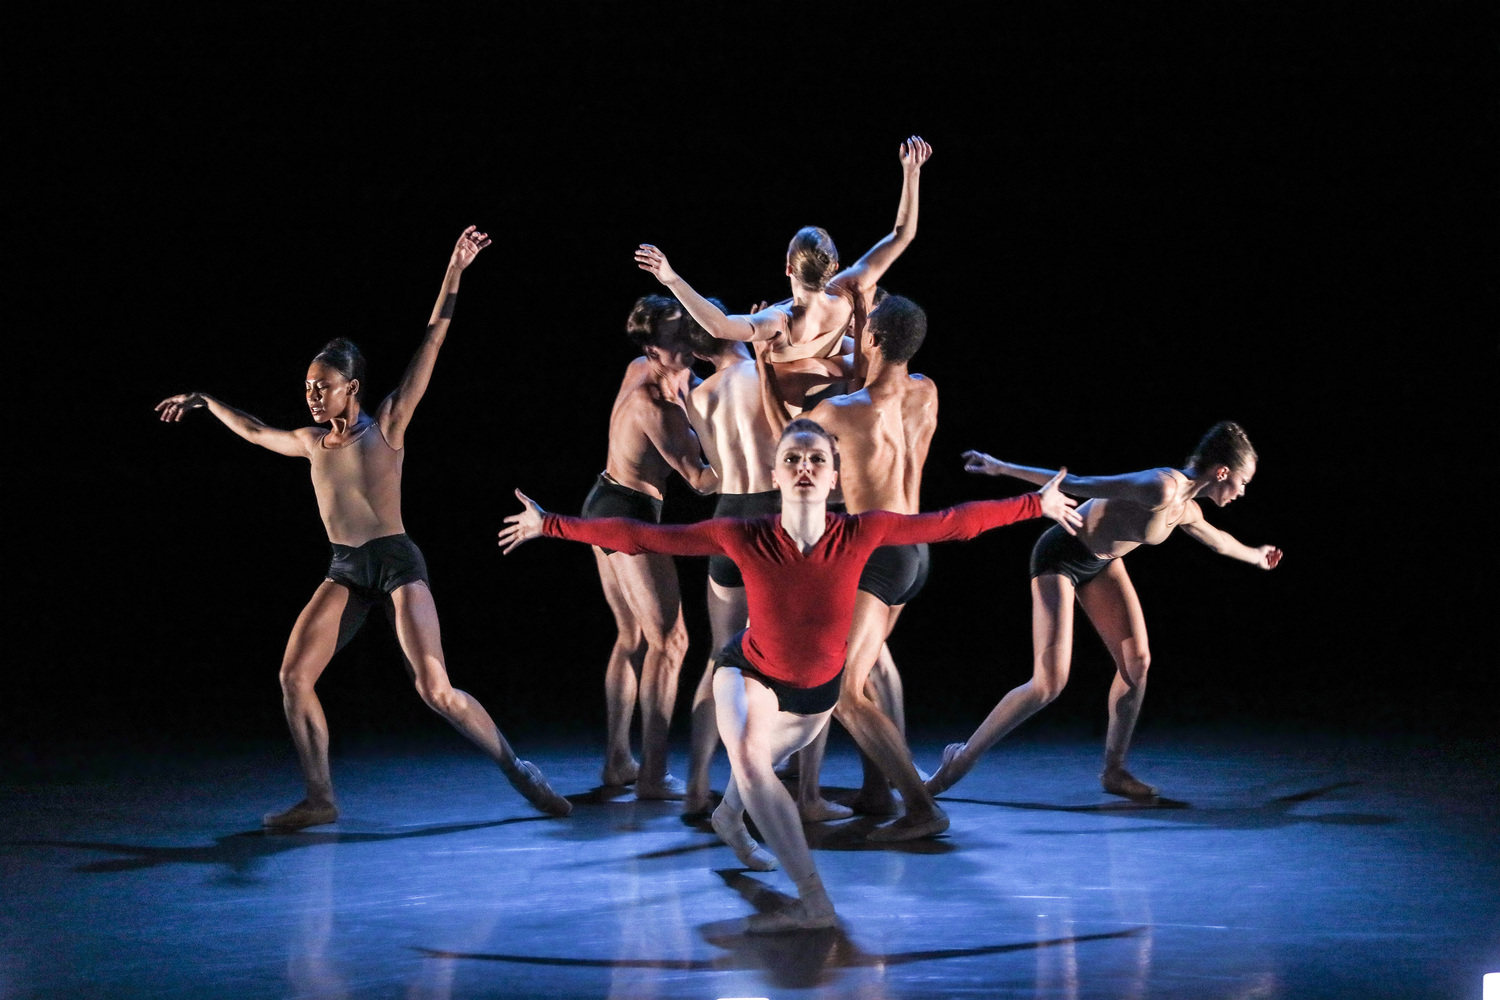 BWW Review: The Truly Innovative Dances of Charlotte Ballet's INNOVATIVE WORKS Are Mesmerizing